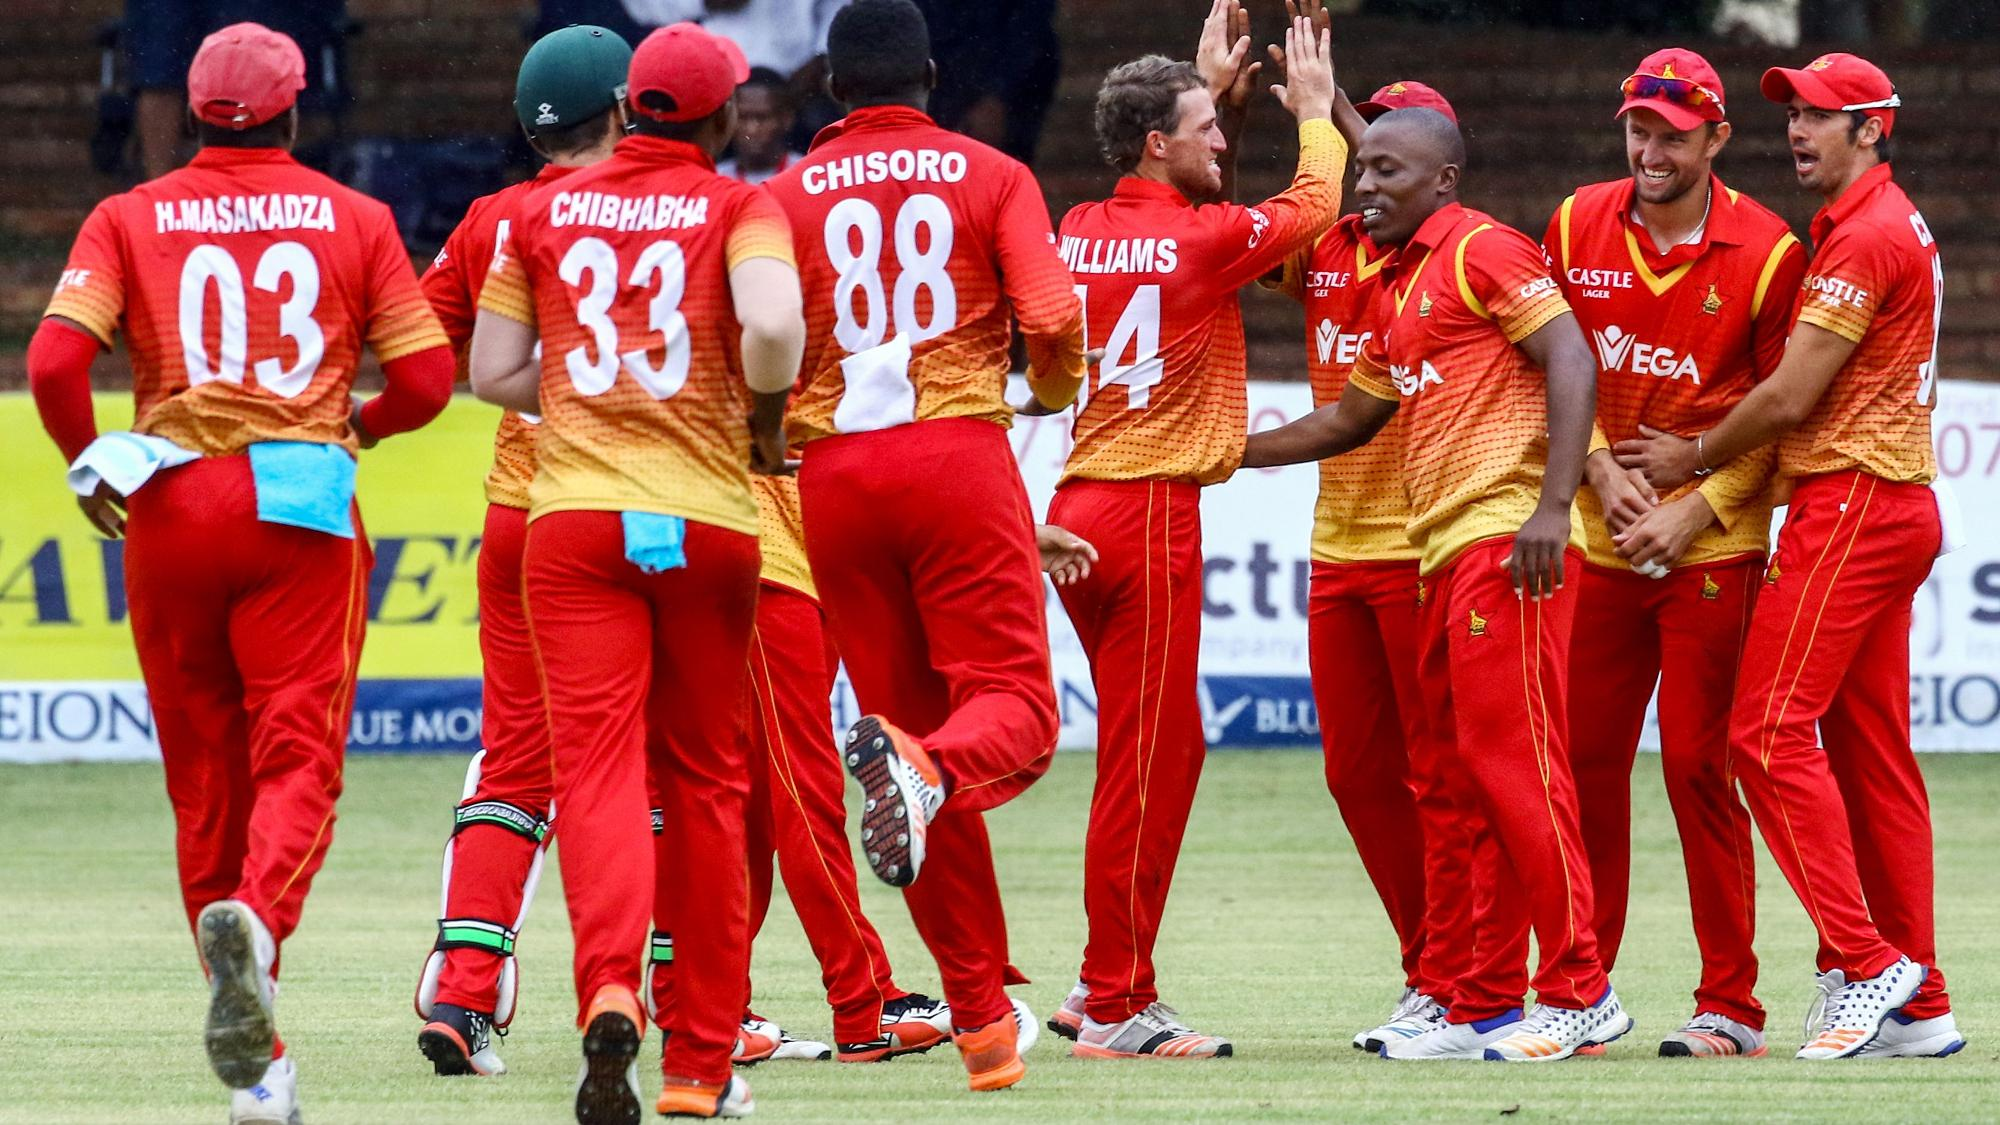 Government of Zimbabwe grants permission to its team for tour of Pakistan